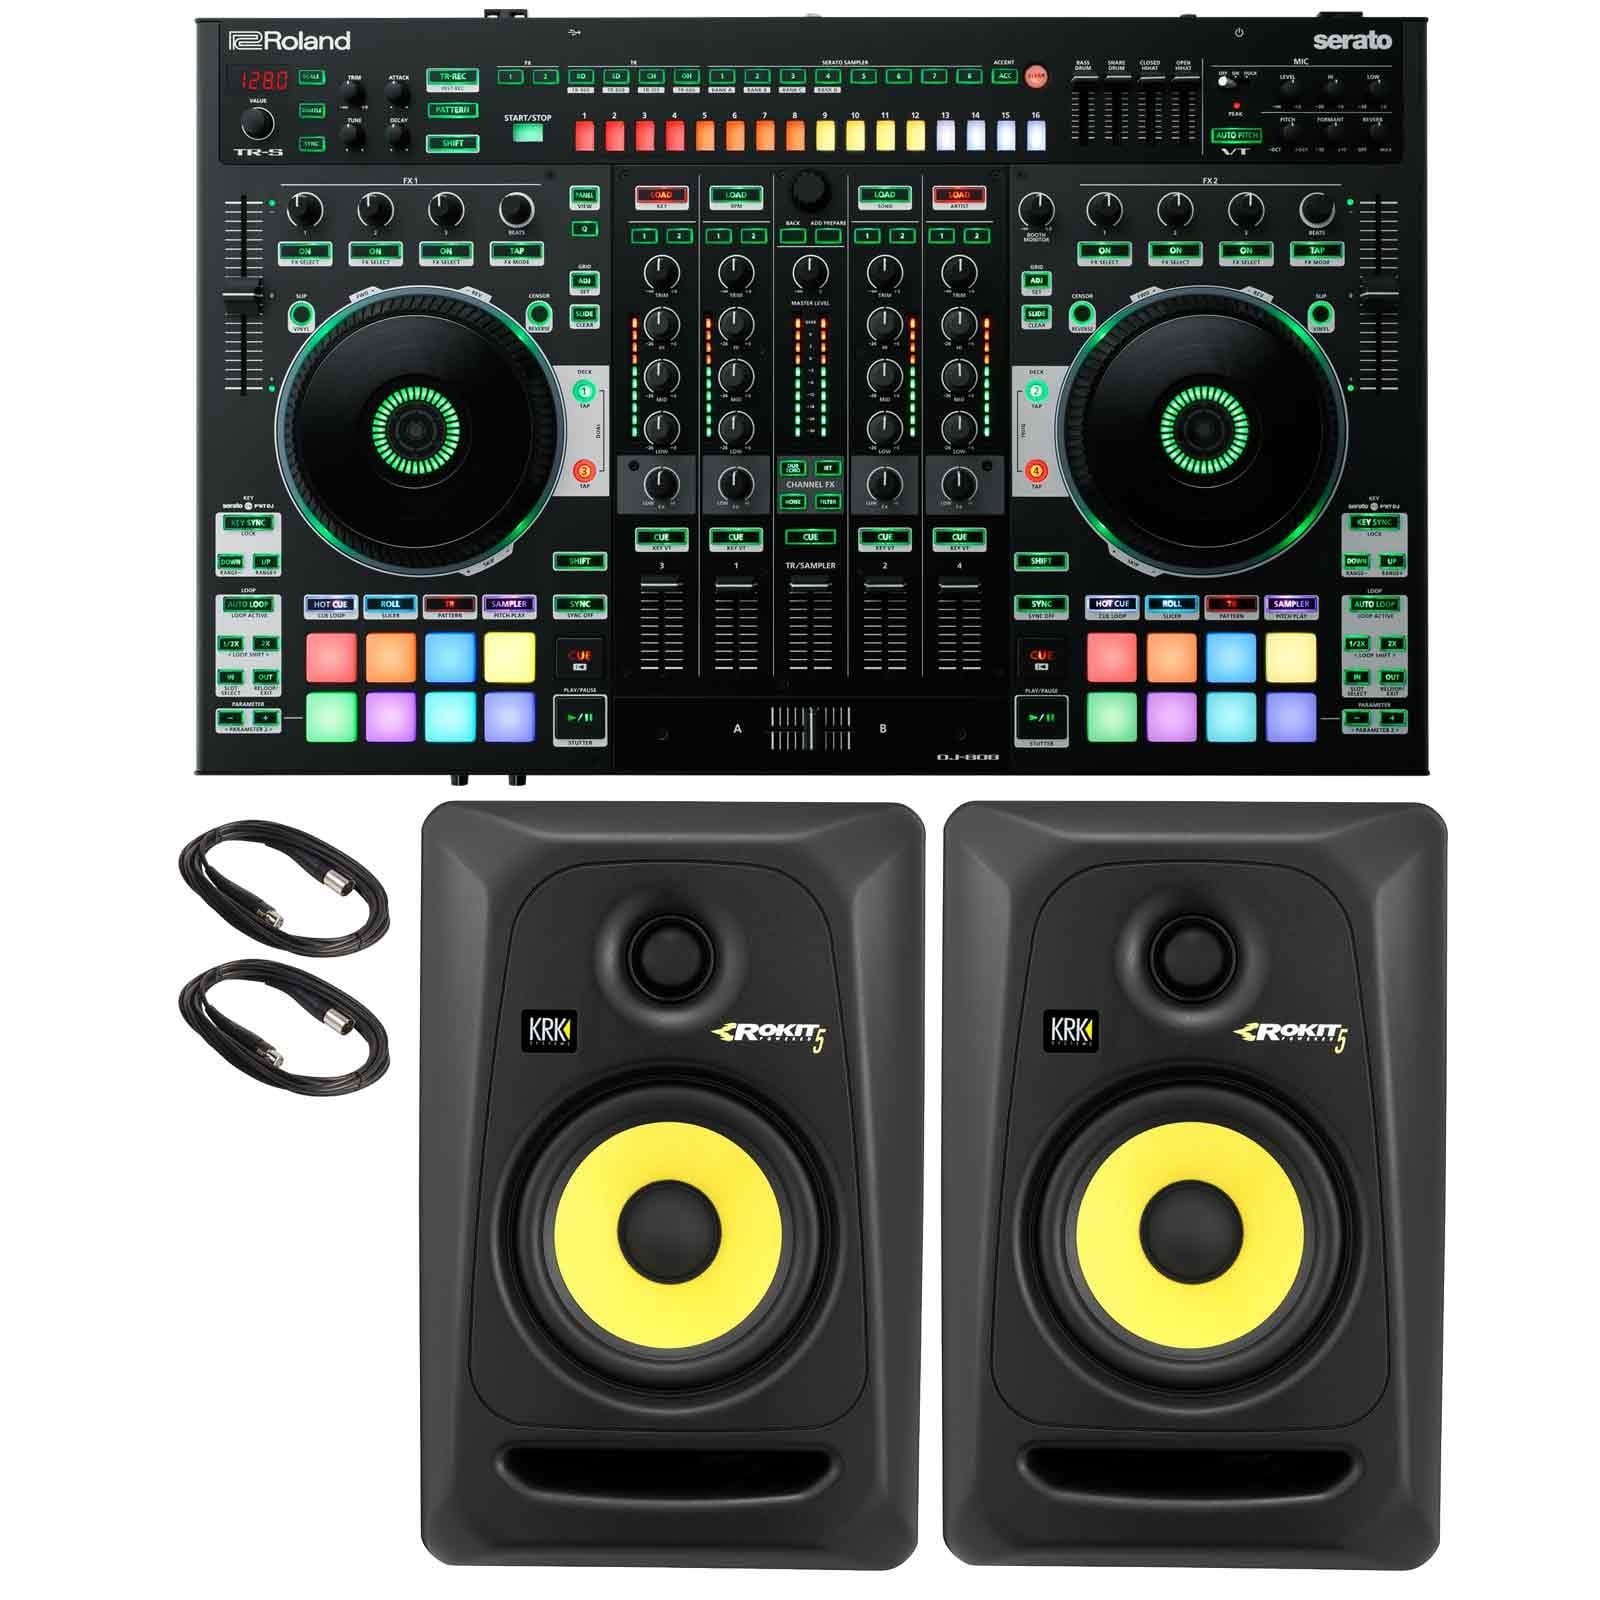 roland-dj-808-4-channel-mixer-dj-controller-with-krk-rokit-rp5g3-5-powered-monitor-speakers-pack.jpg